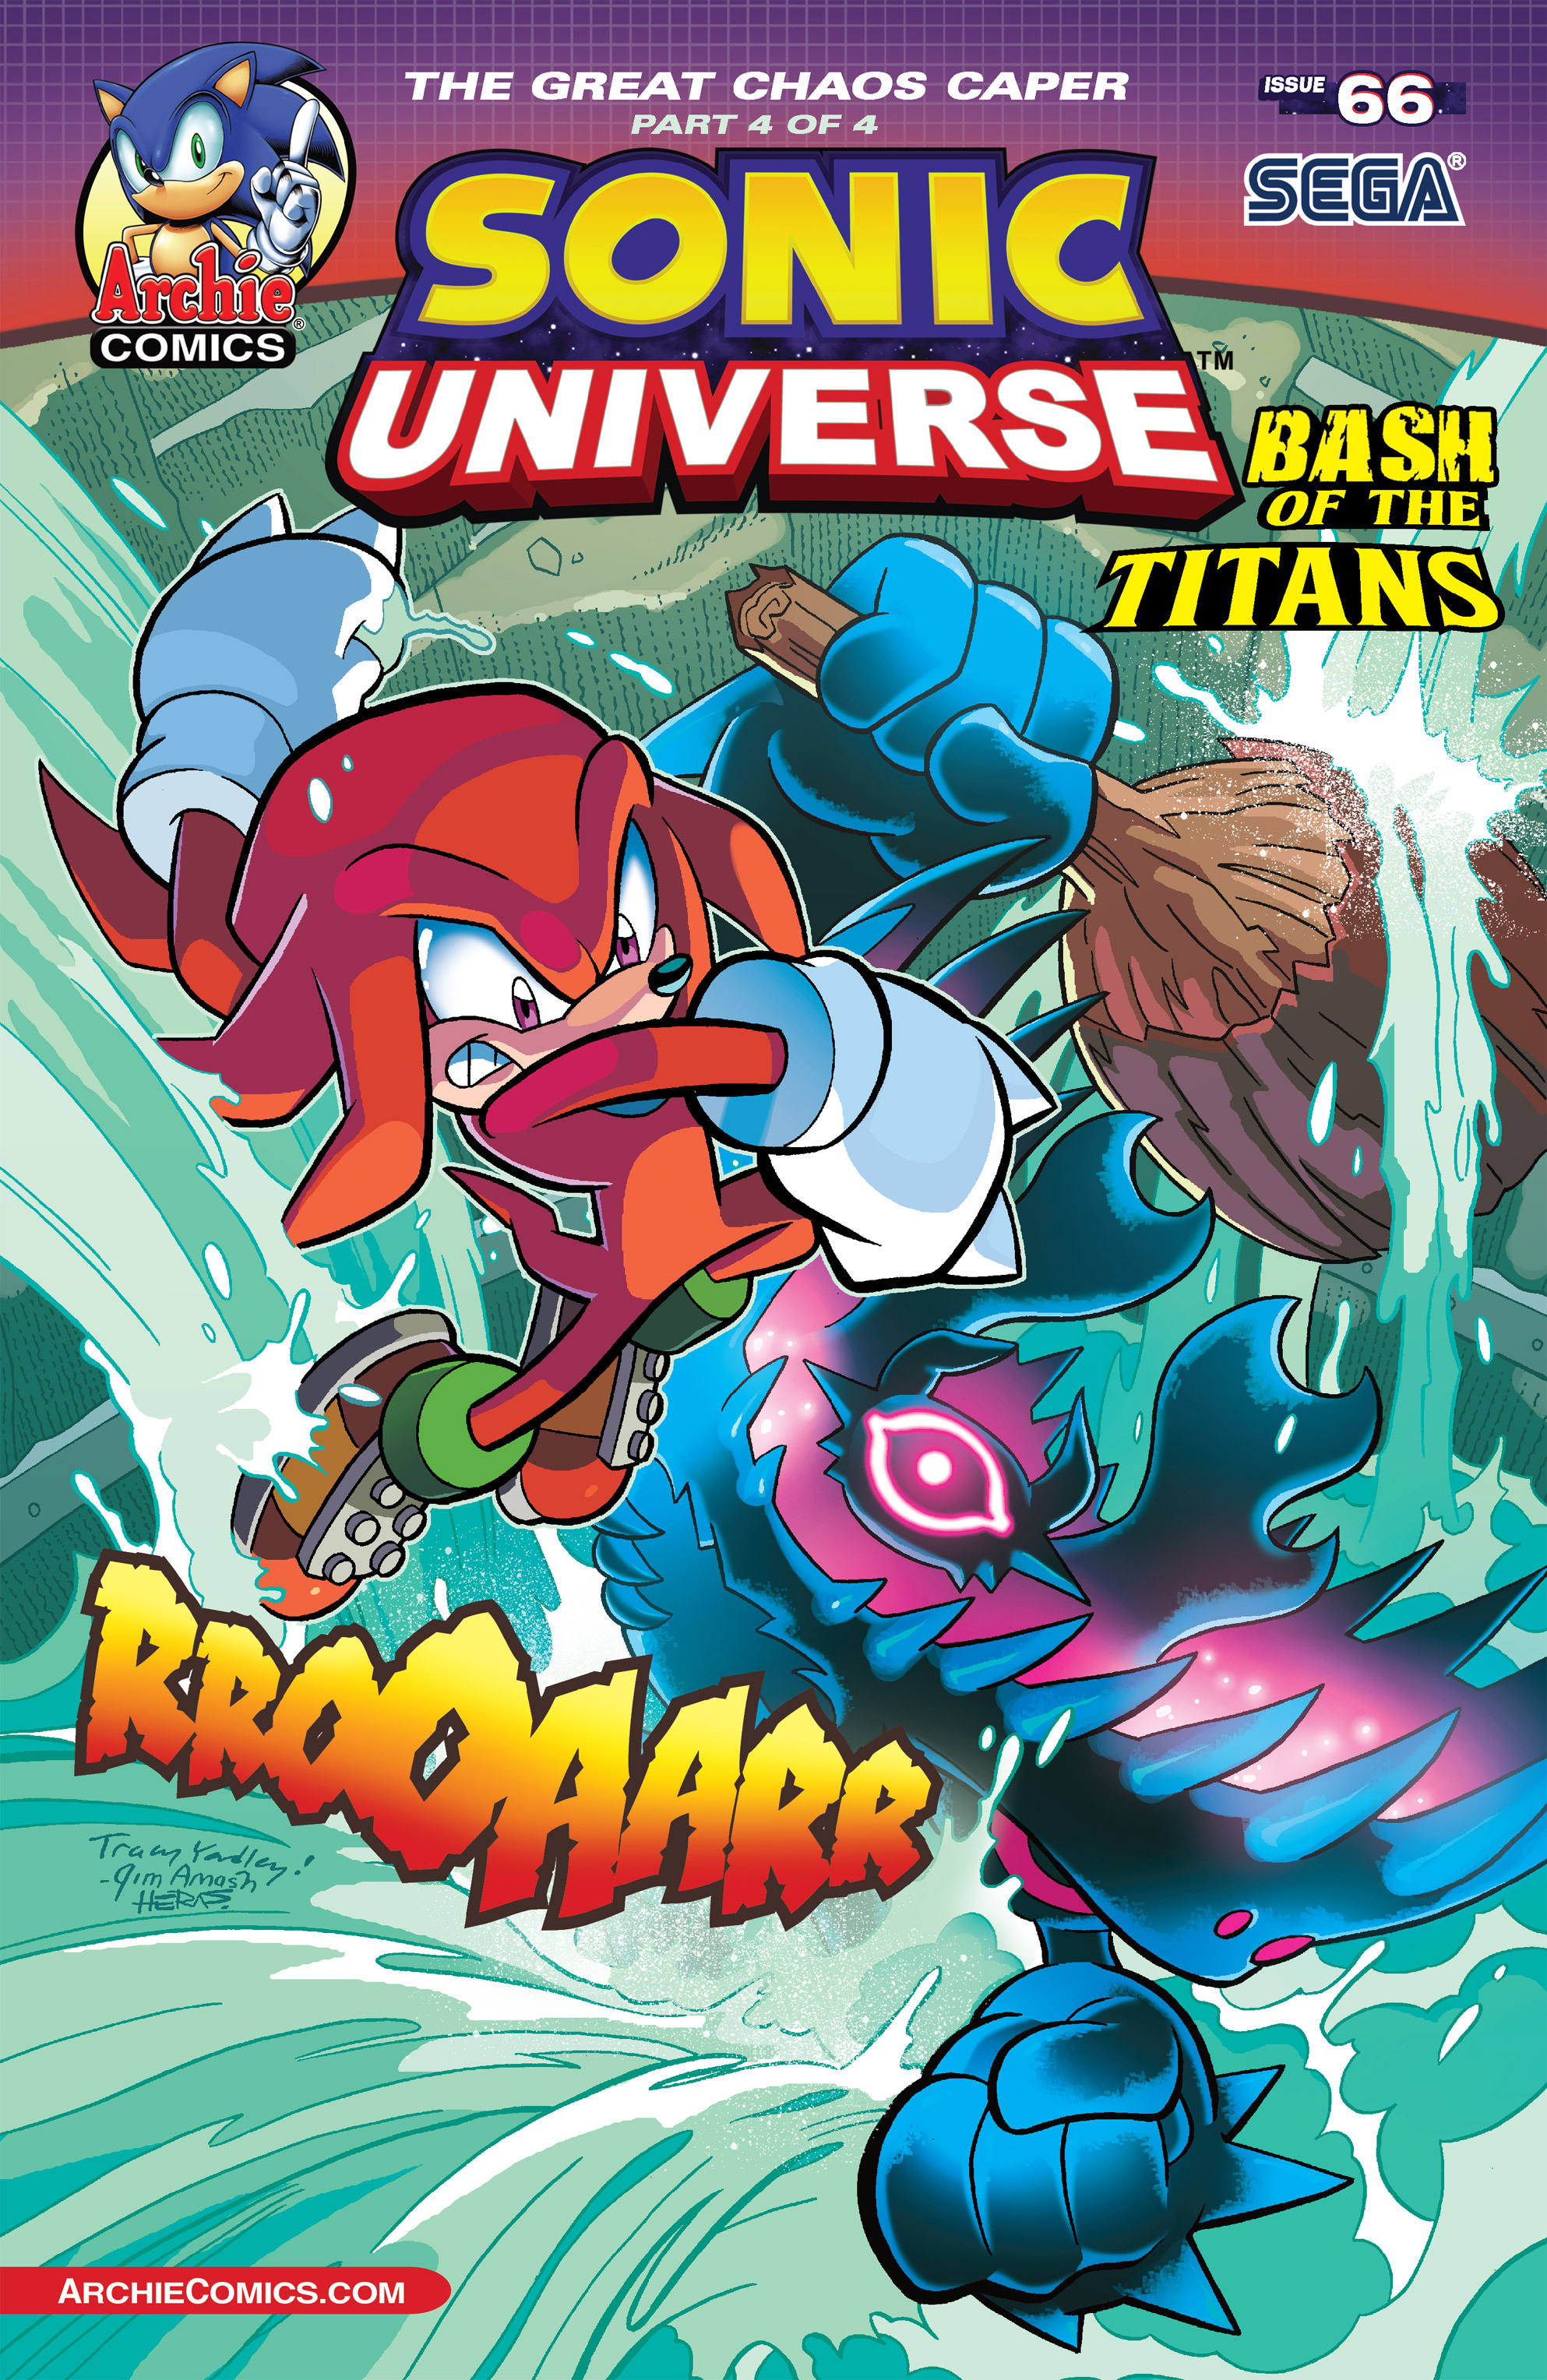 Sonic Universe Issue 66